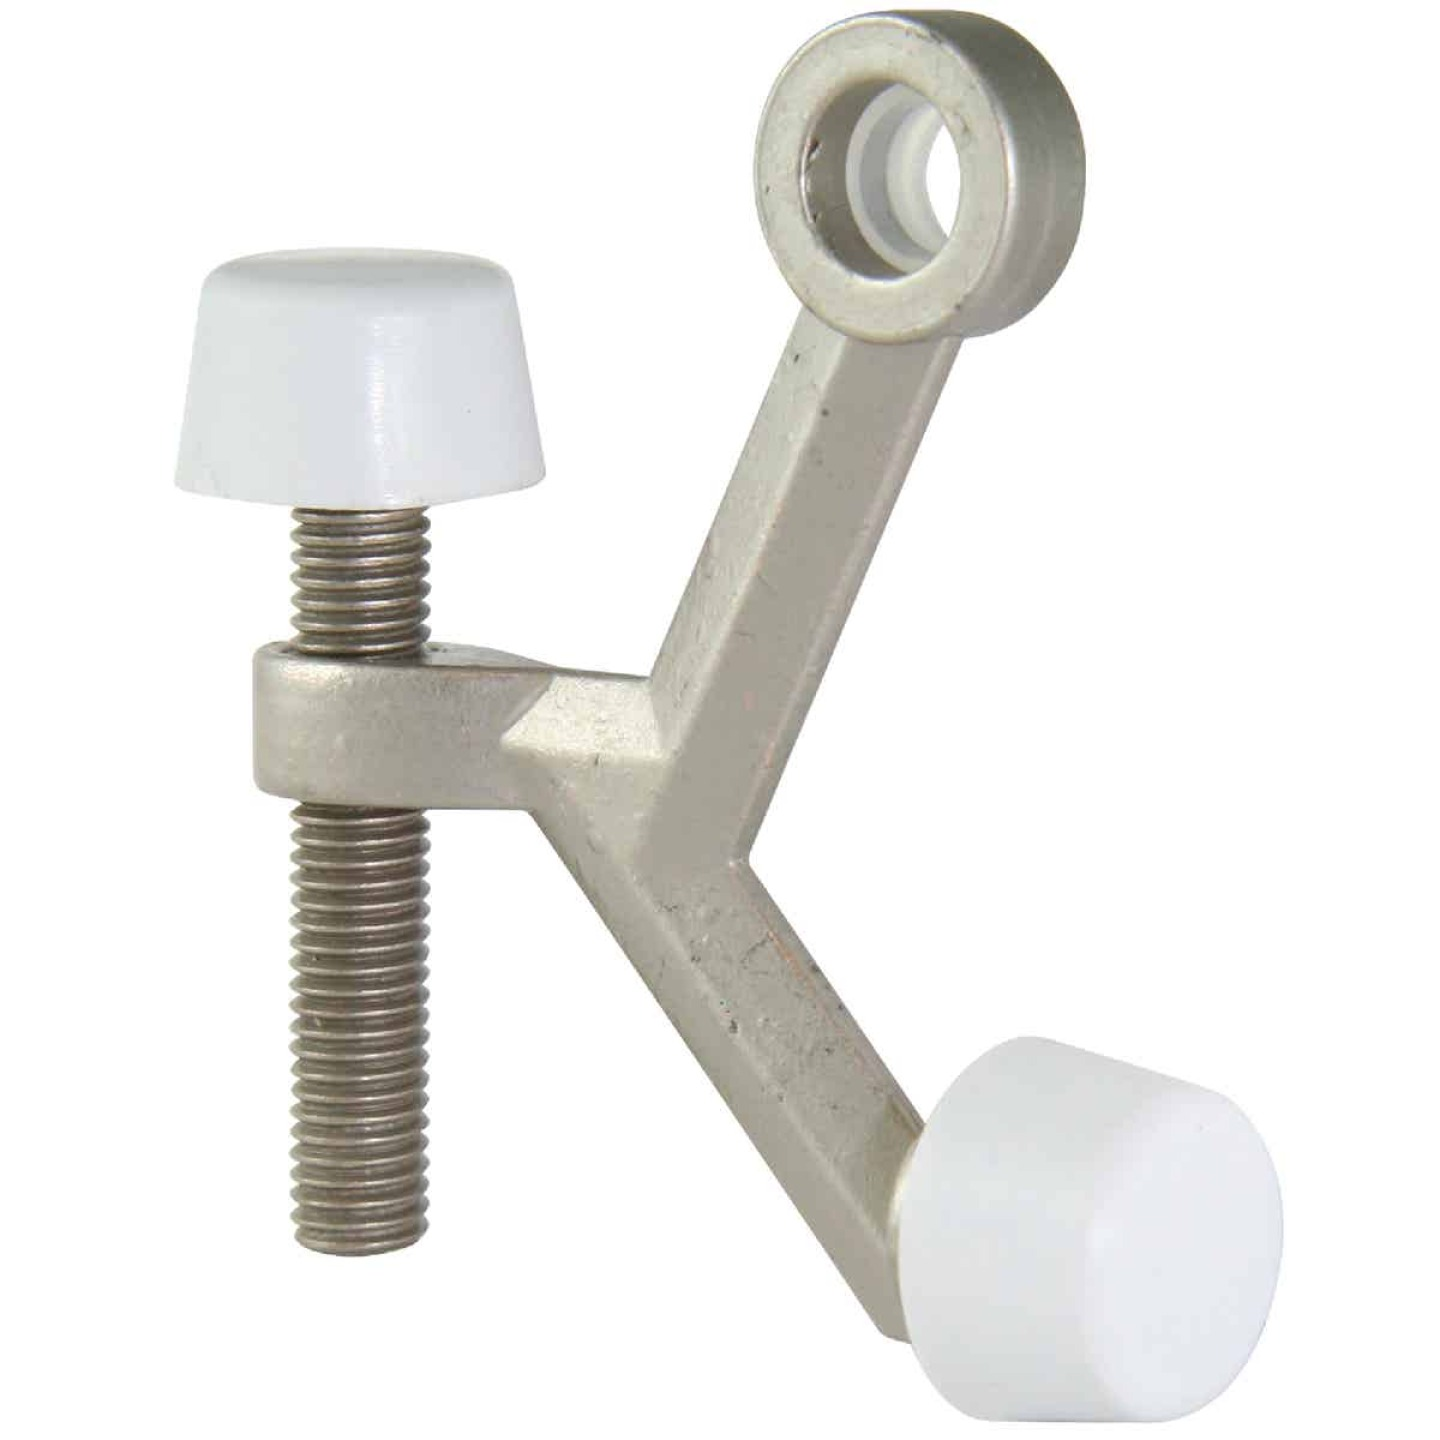 Ultra Hardware 3 In. Satin Nickel Hinge Pin Door Stop Image 1